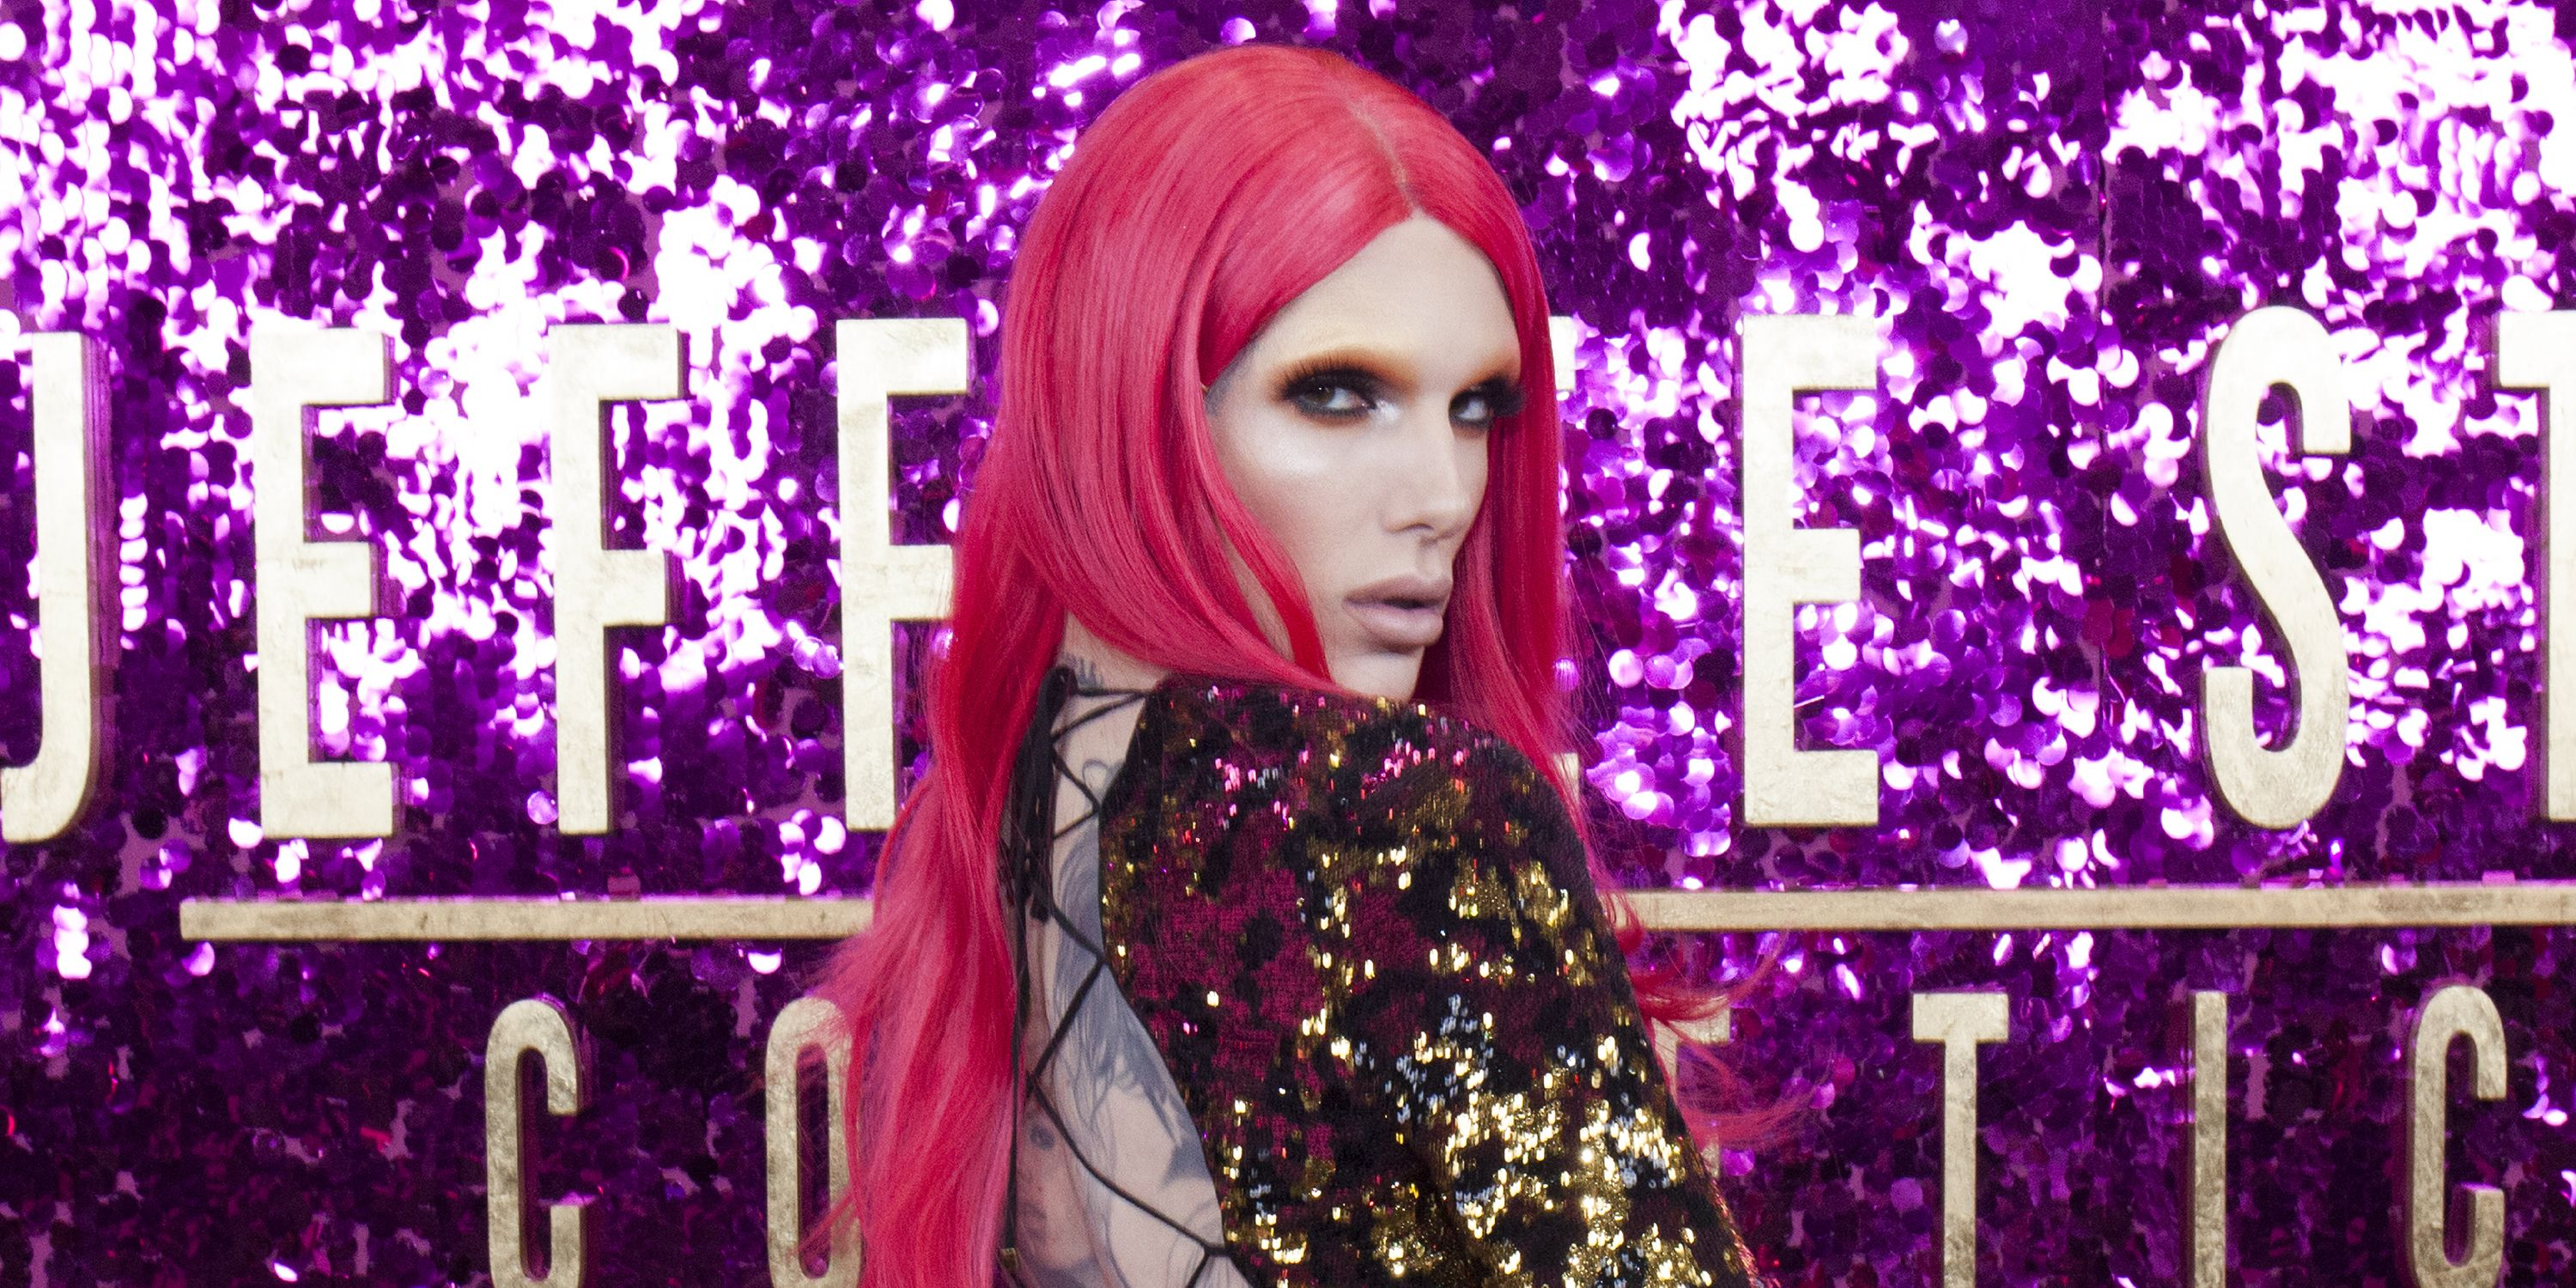 YouTuber Jeffree Star Has Been Hospitalized After A Severe Car Accident